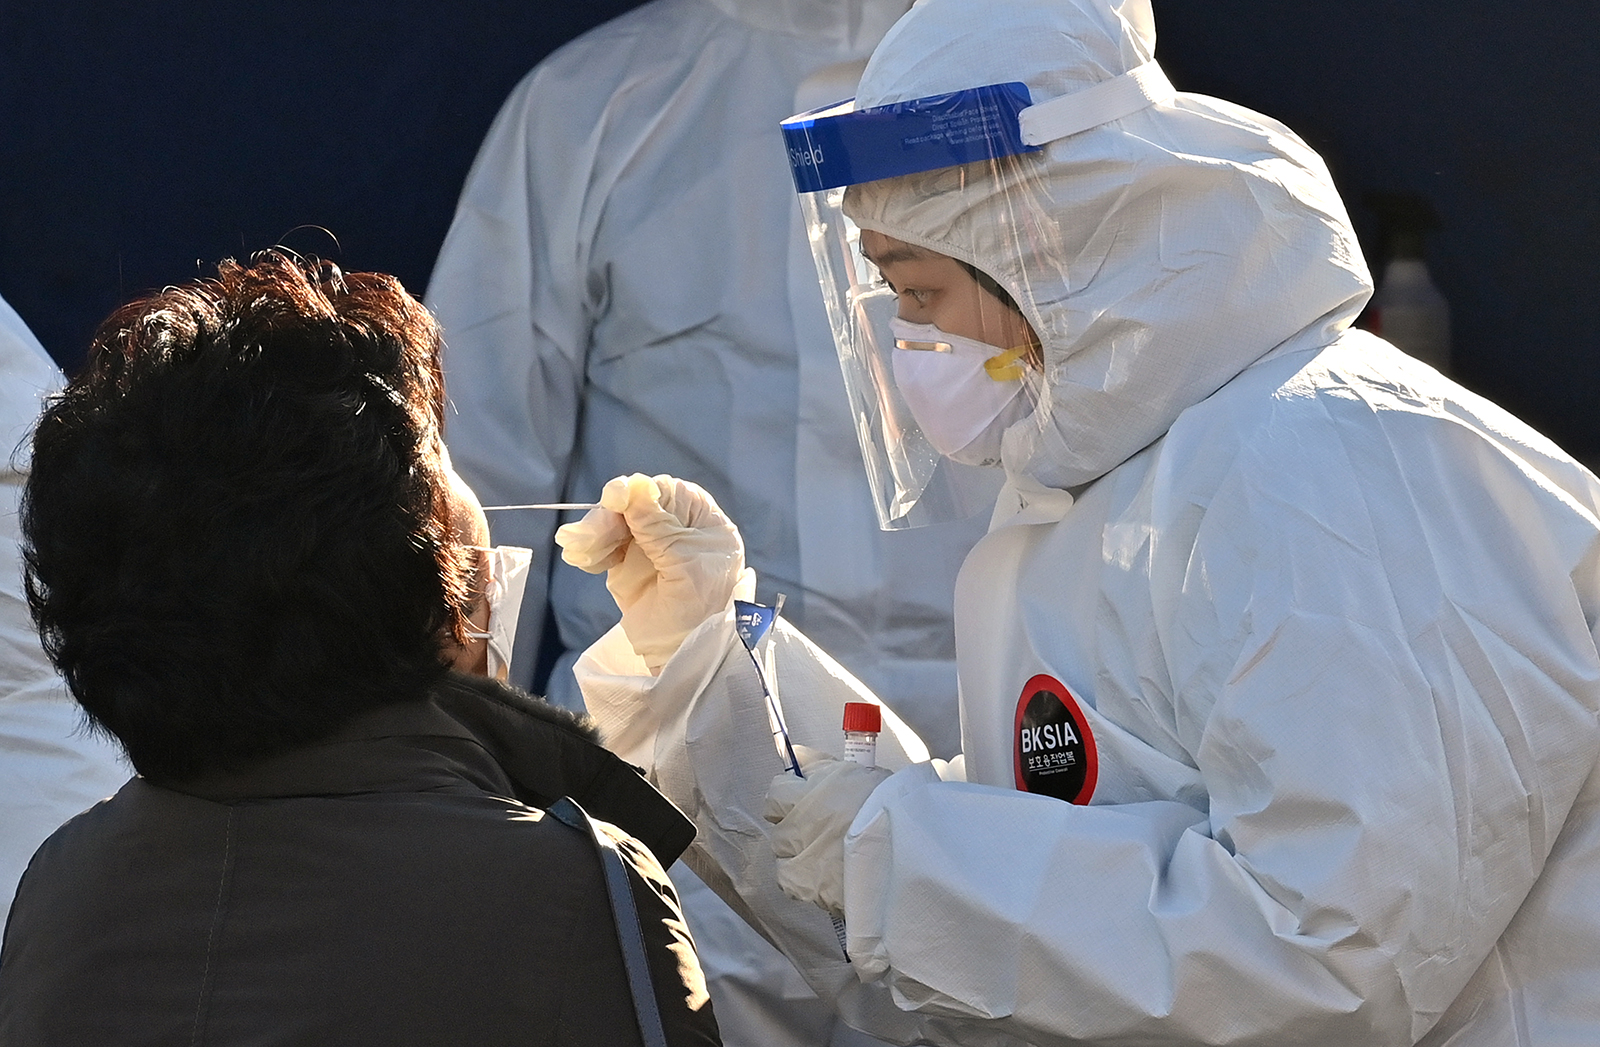 A medical staff member wearing protective gear takes a swab from a woman to test for Covid-19 at a temporary testing station in Seoul, South Korea, on Dec. 14.